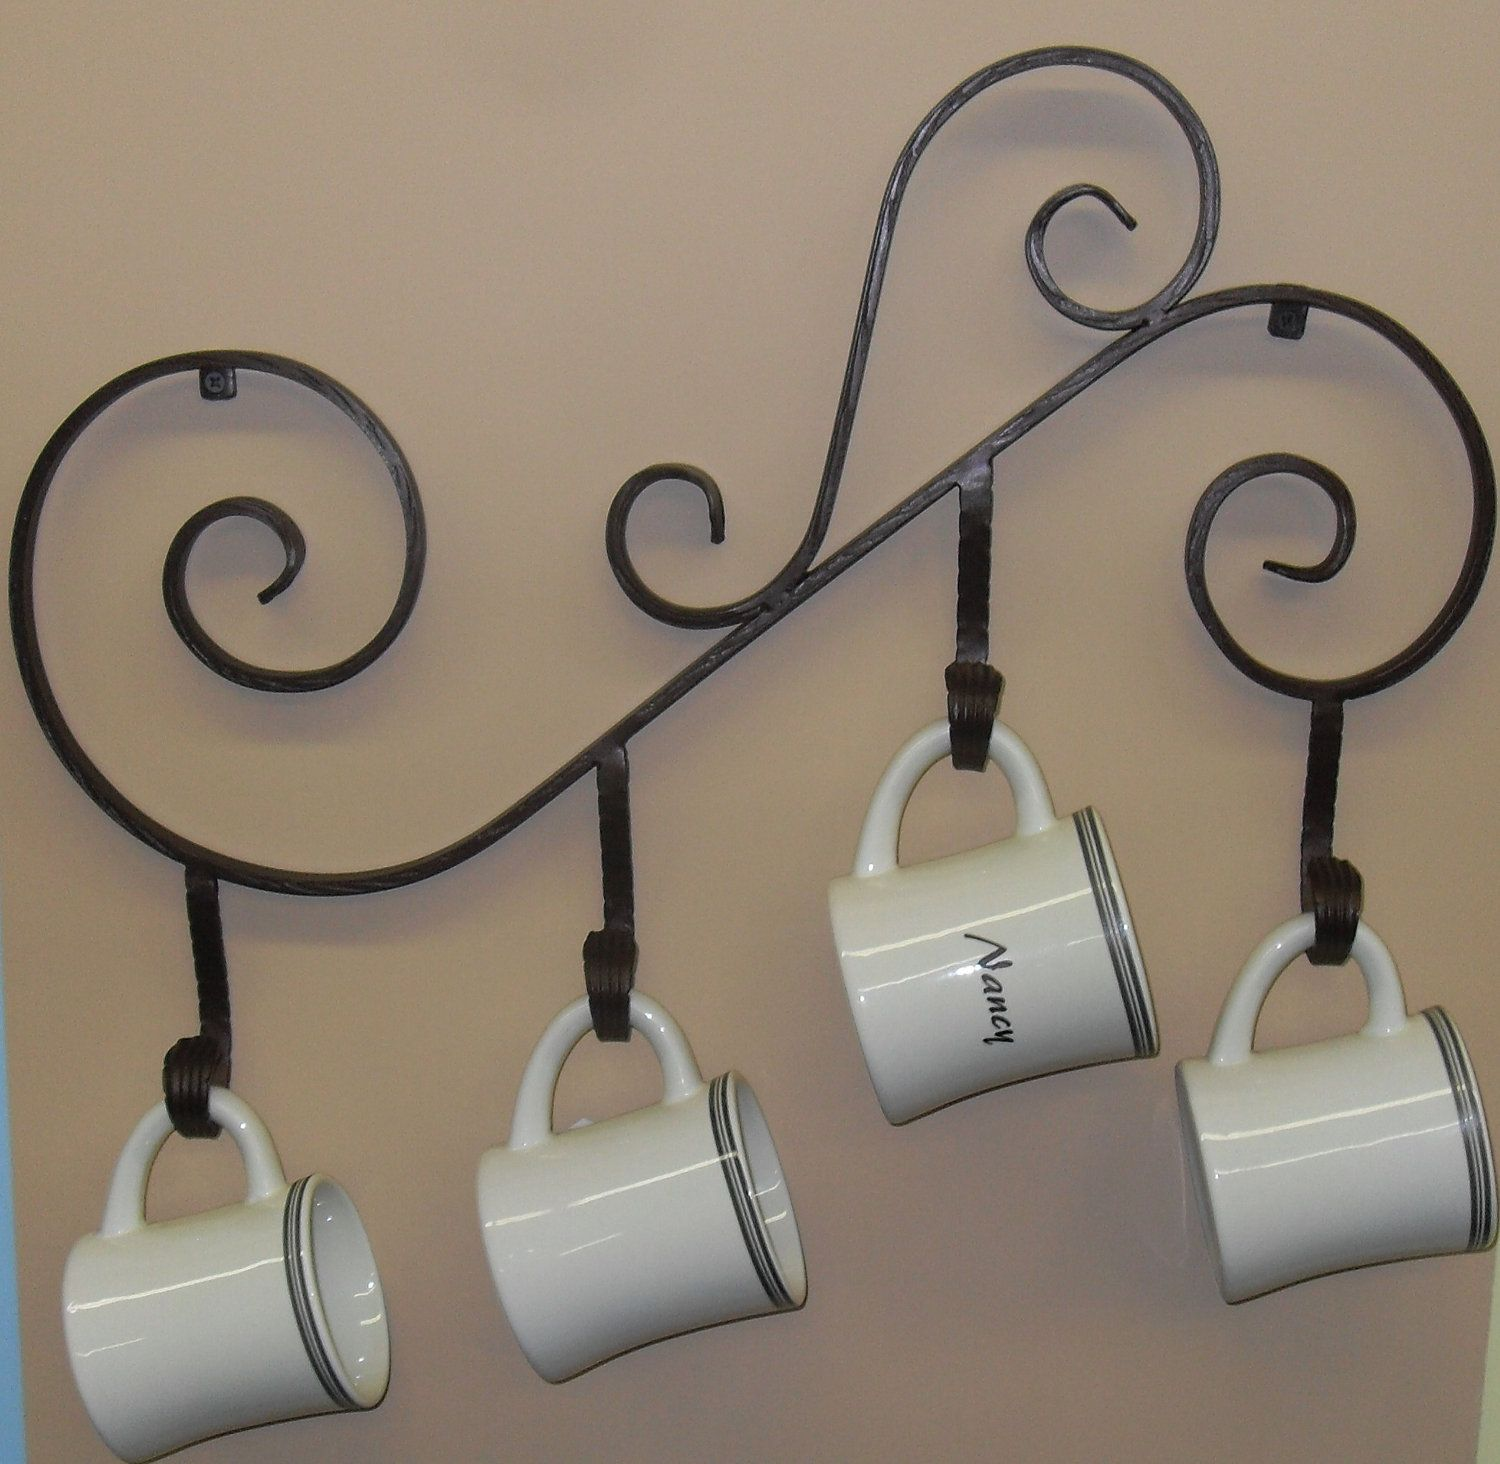 Coffee Mug Holder Wall Mounted Made Out Of Wrought Iron 34 75 Via Etsy